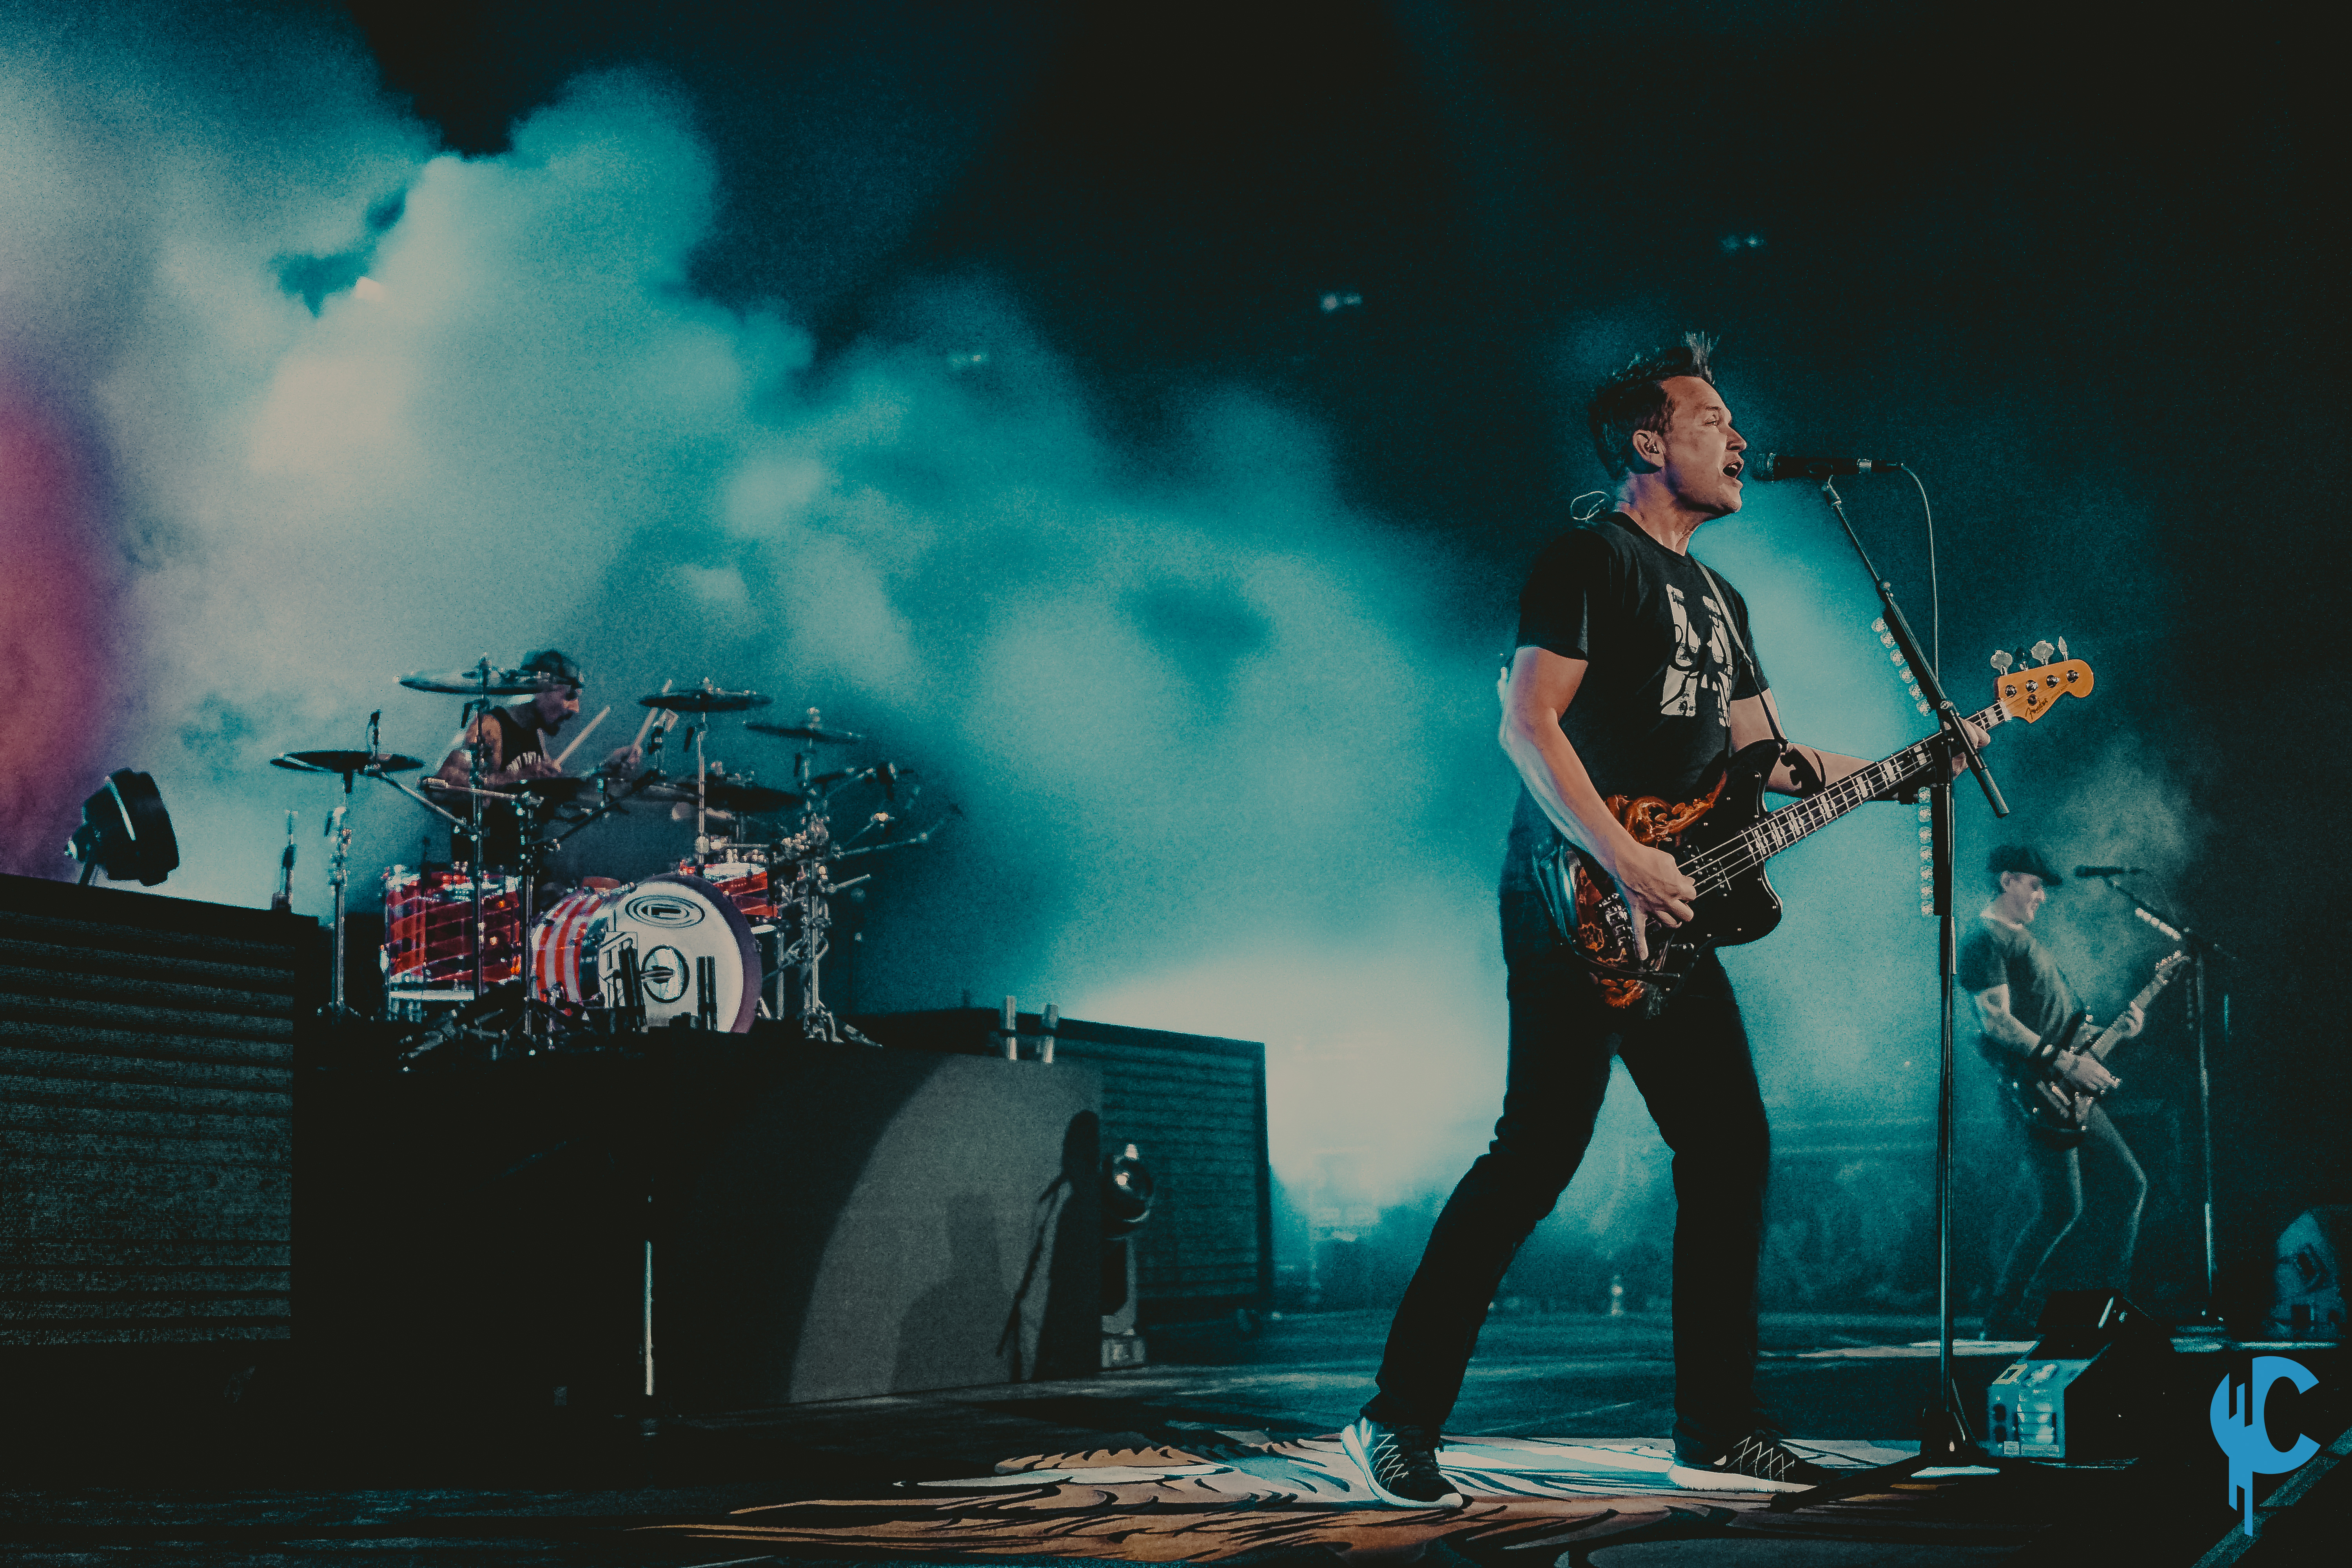 Mark Hoppus / blink 182